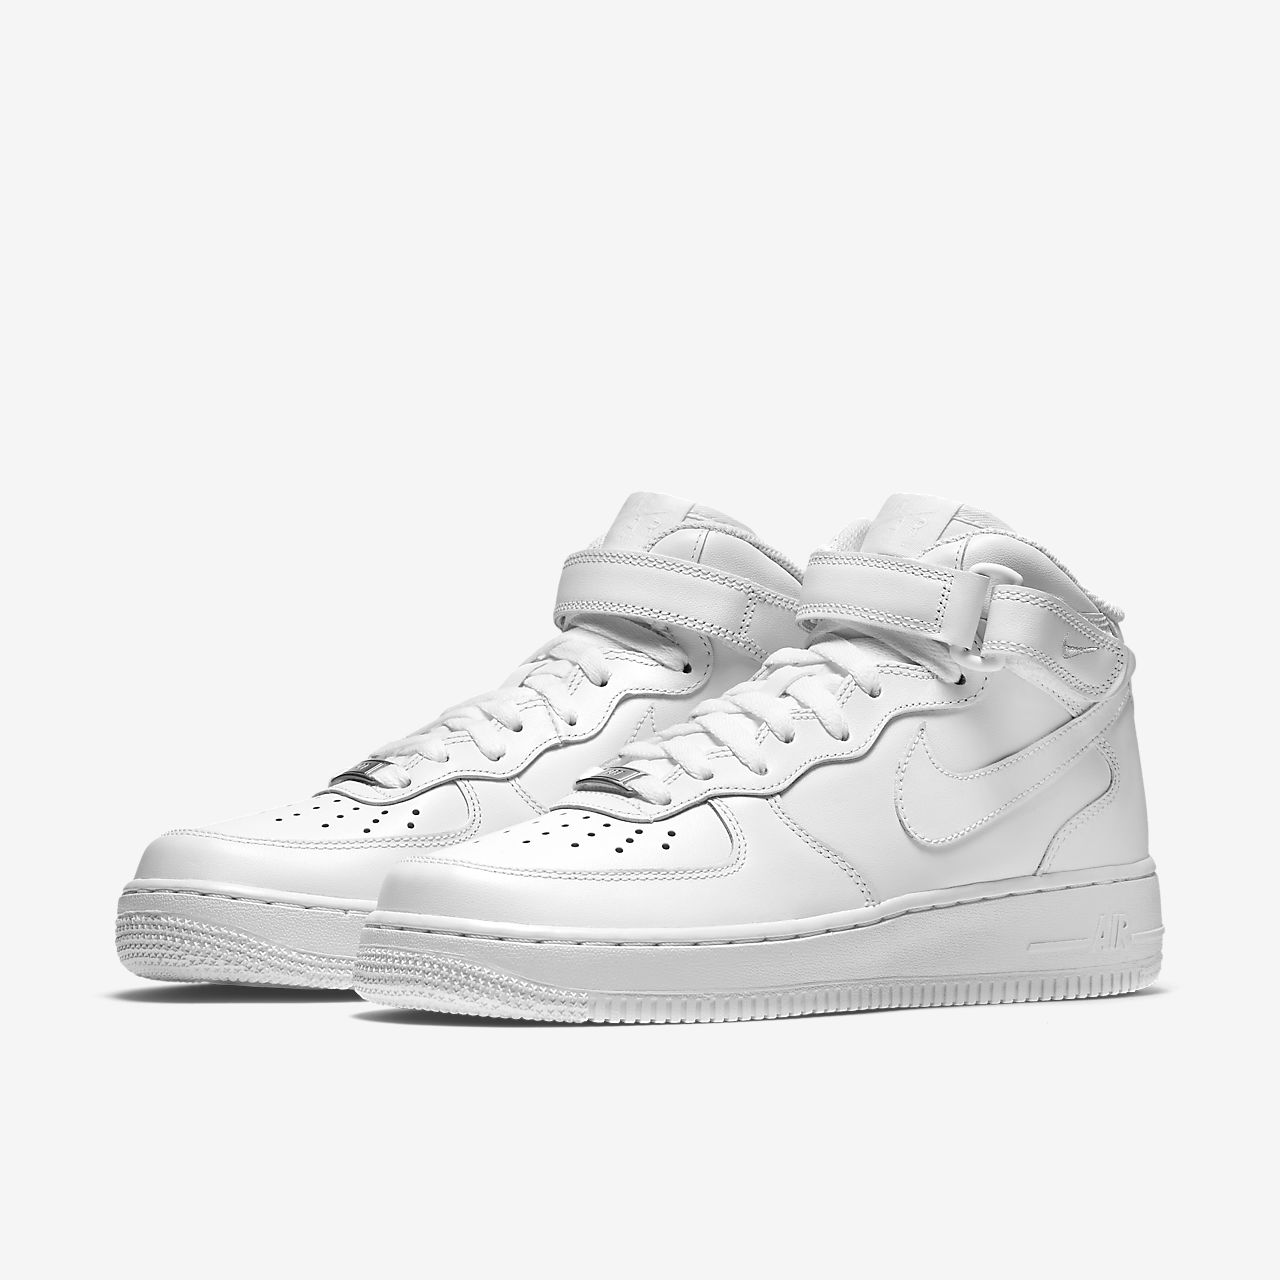 nike air force 1 mid 07 basketball shoes white\/white converse